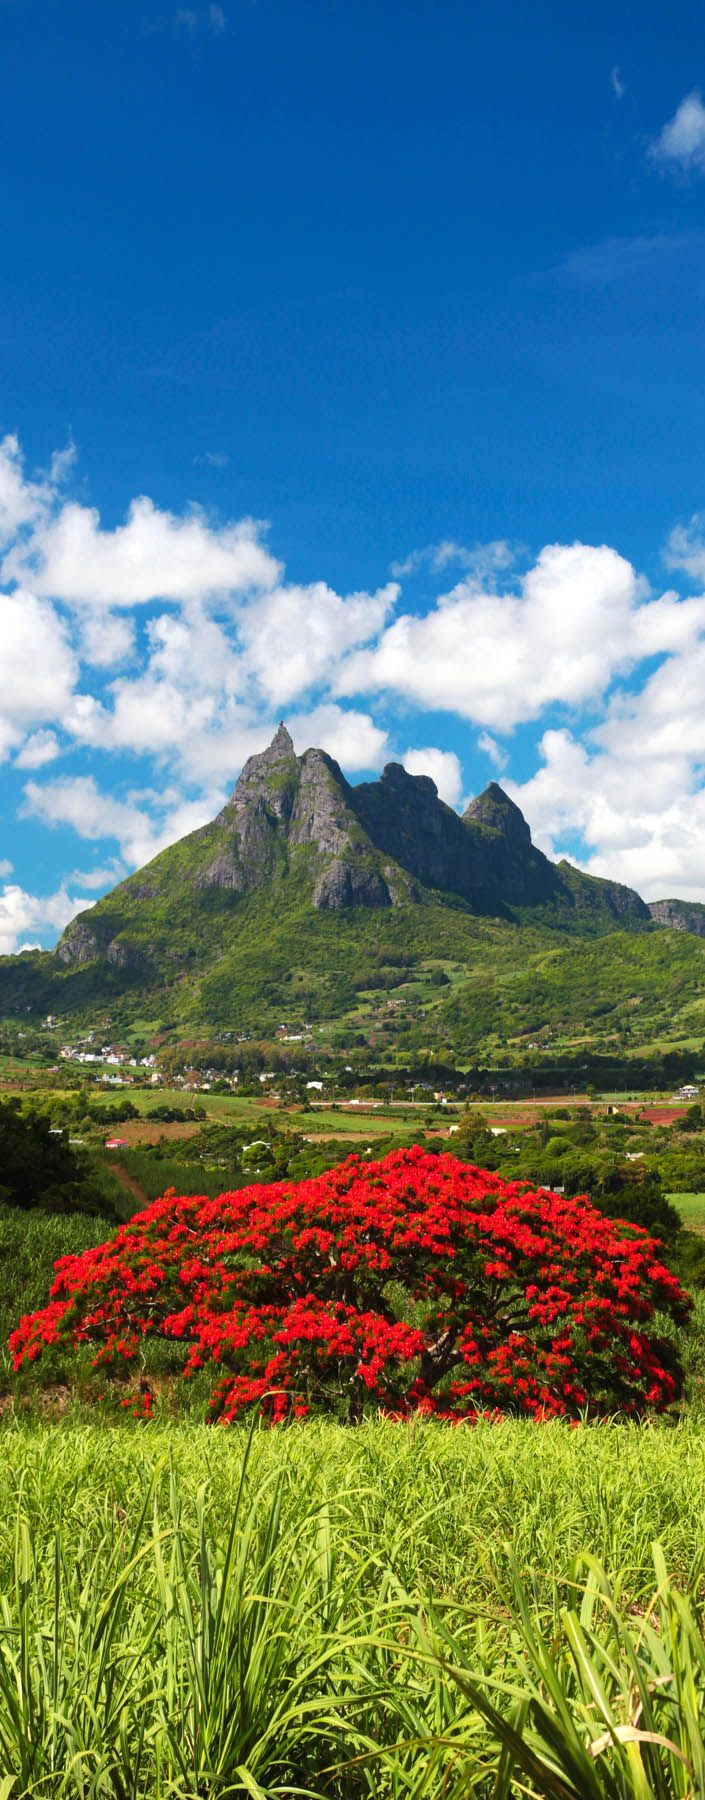 Blooming Flamboyant Tree with Pieter Both mountain as background in Mauritius     |    Check Out The Most Majestically Trees In The World!